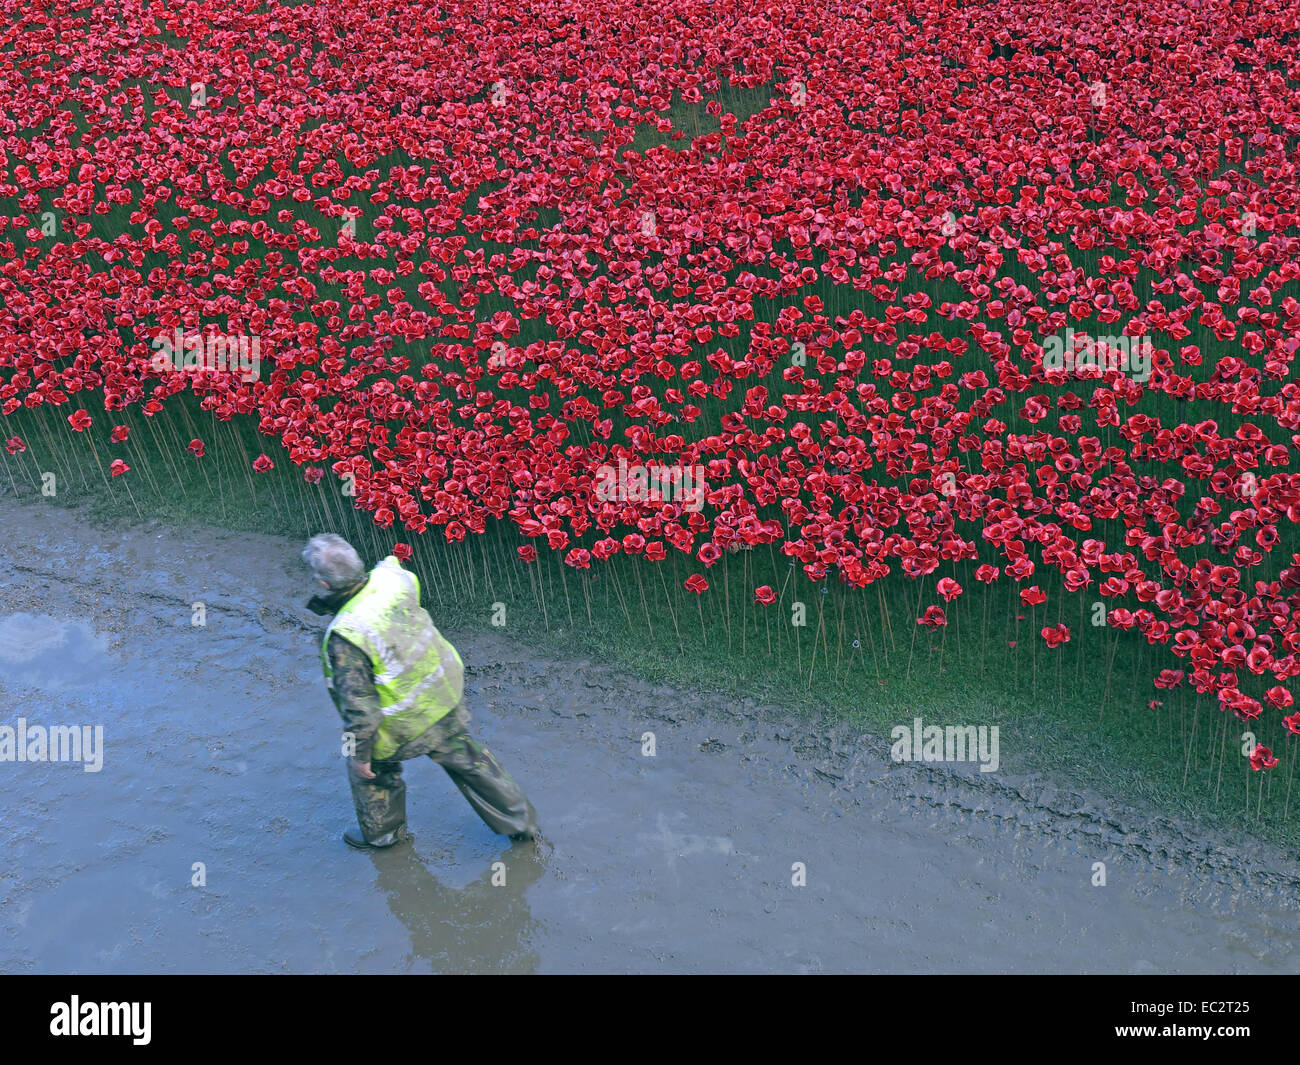 Volunteer passes Blood Swept Lands and Seas of Red poppies, at The Tower of London, England UK - Stock Image